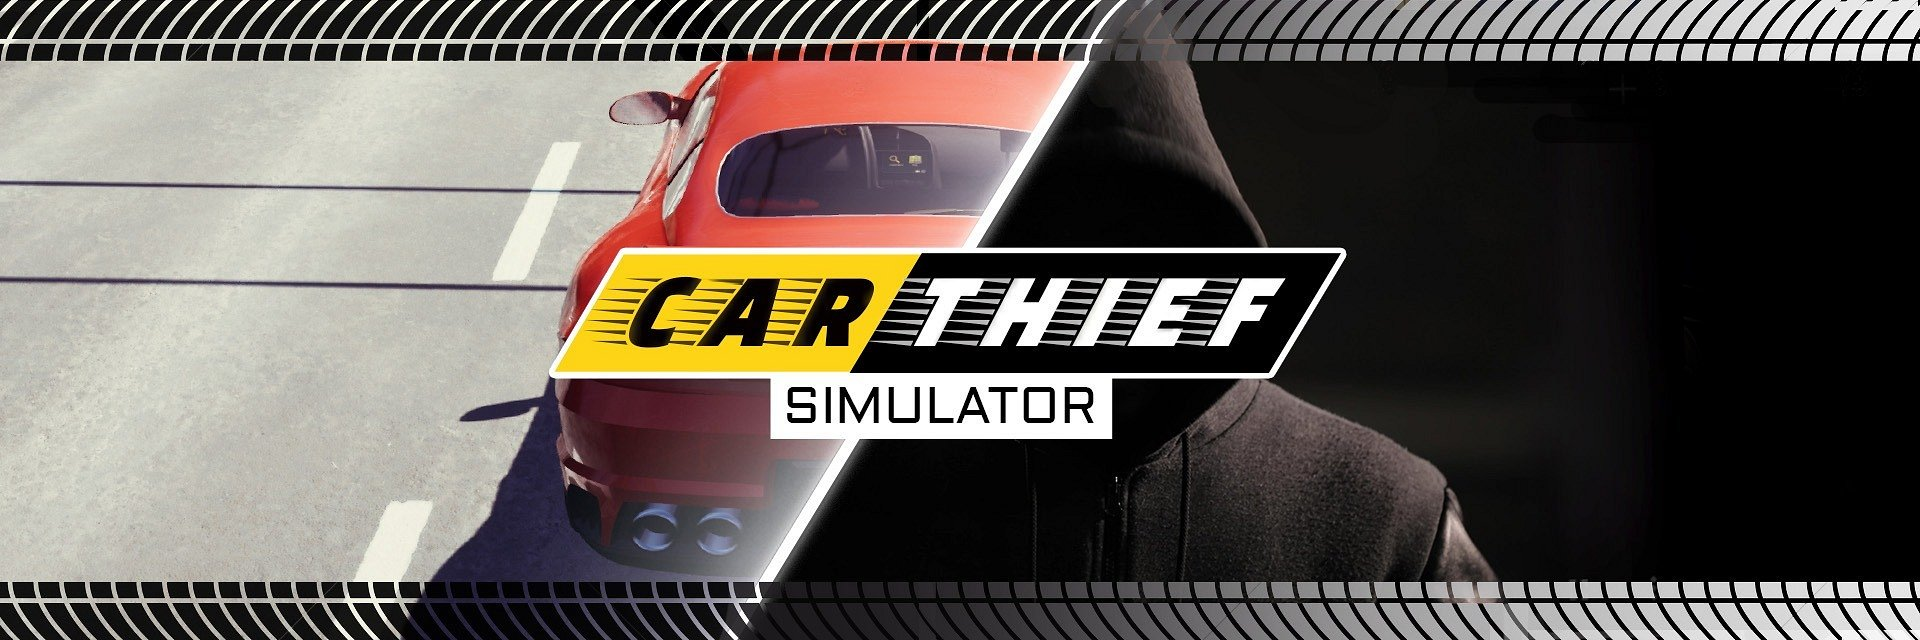 The Dust has announced the third in a series of 15 simulator games. You can already track the development of Car Thief Simulator on Steam.